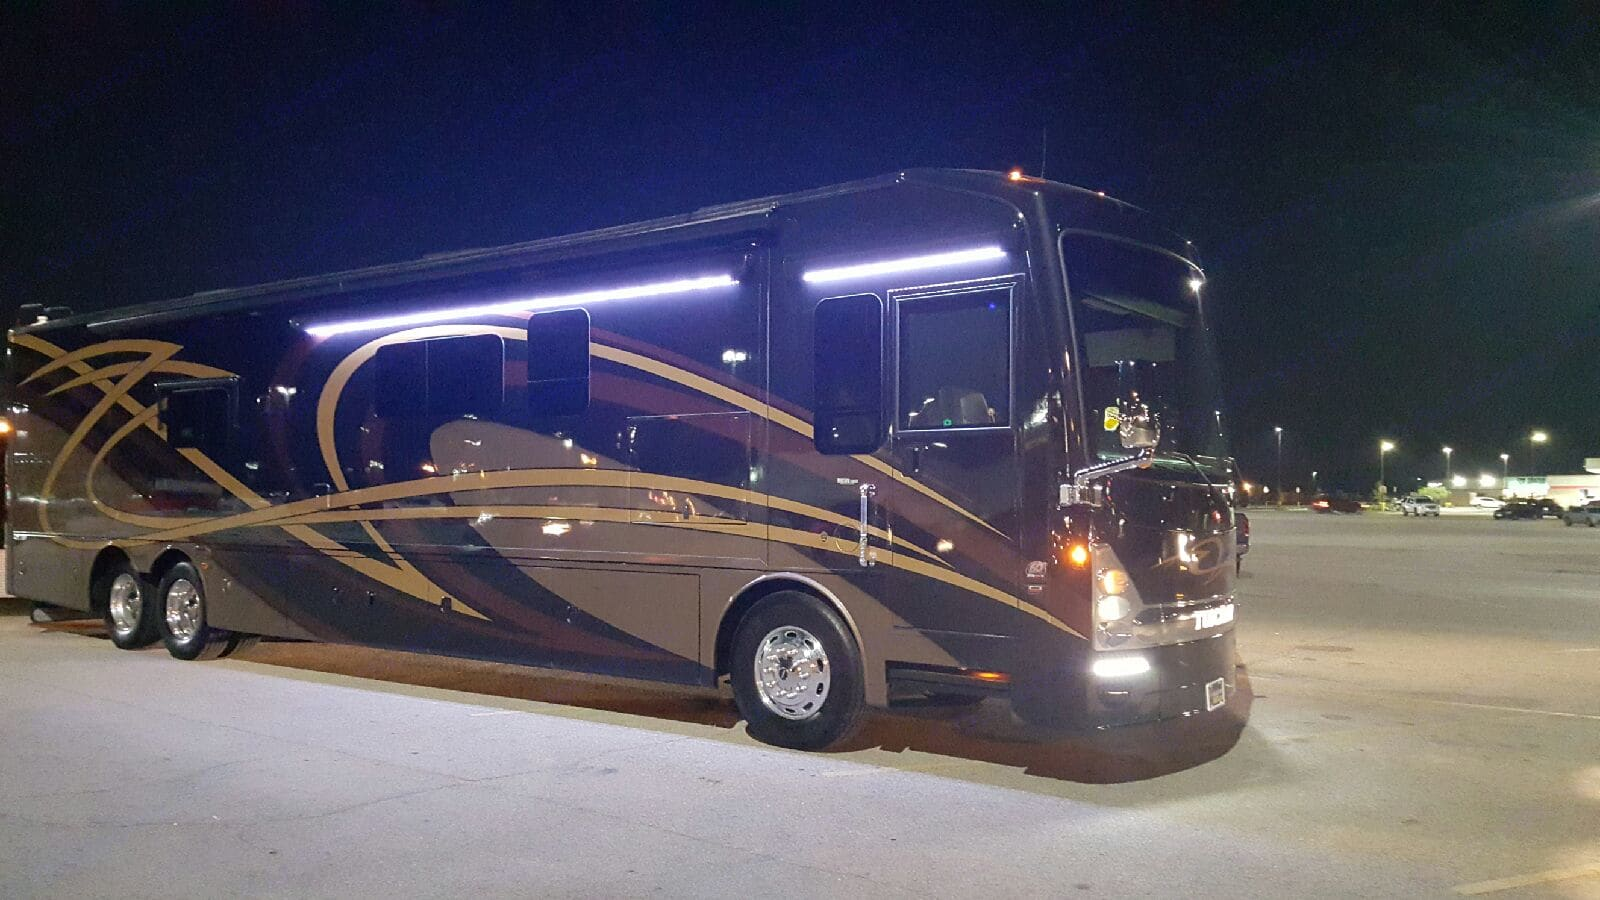 2016 Thor Tuscany 45AT Triple Slide outs, with  a 29ft slide on passenger side and double slides on driver side. Driver will set everything up for you and make sure everything is working properly. . Thor Motor Coach Tuscany 2016